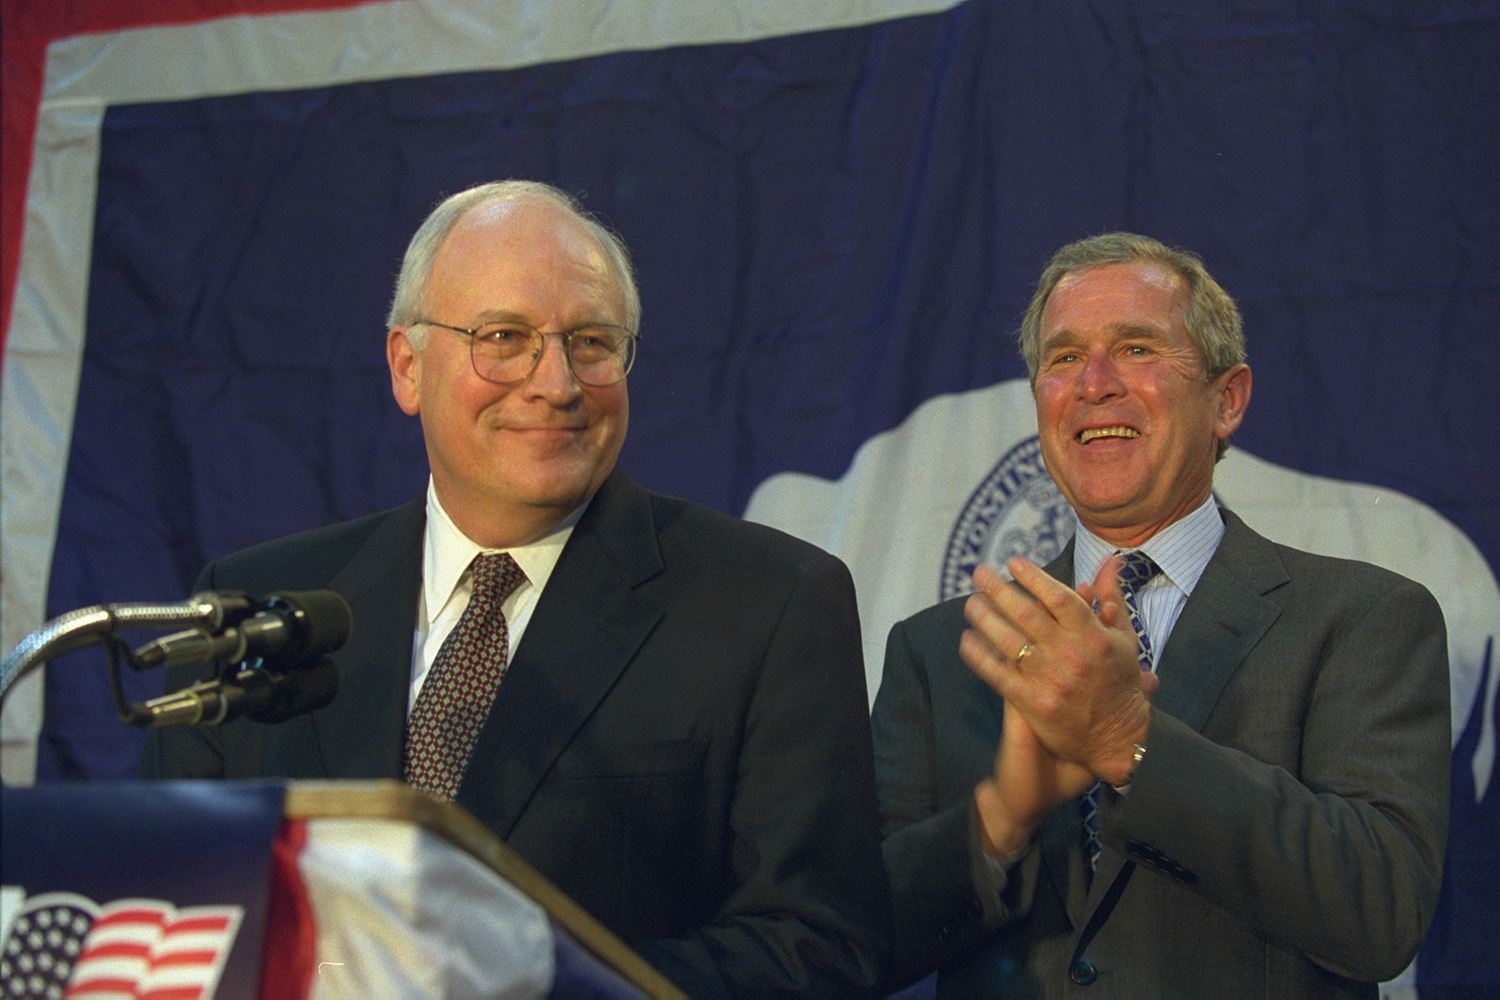 Dick Cheney and George W. Bush